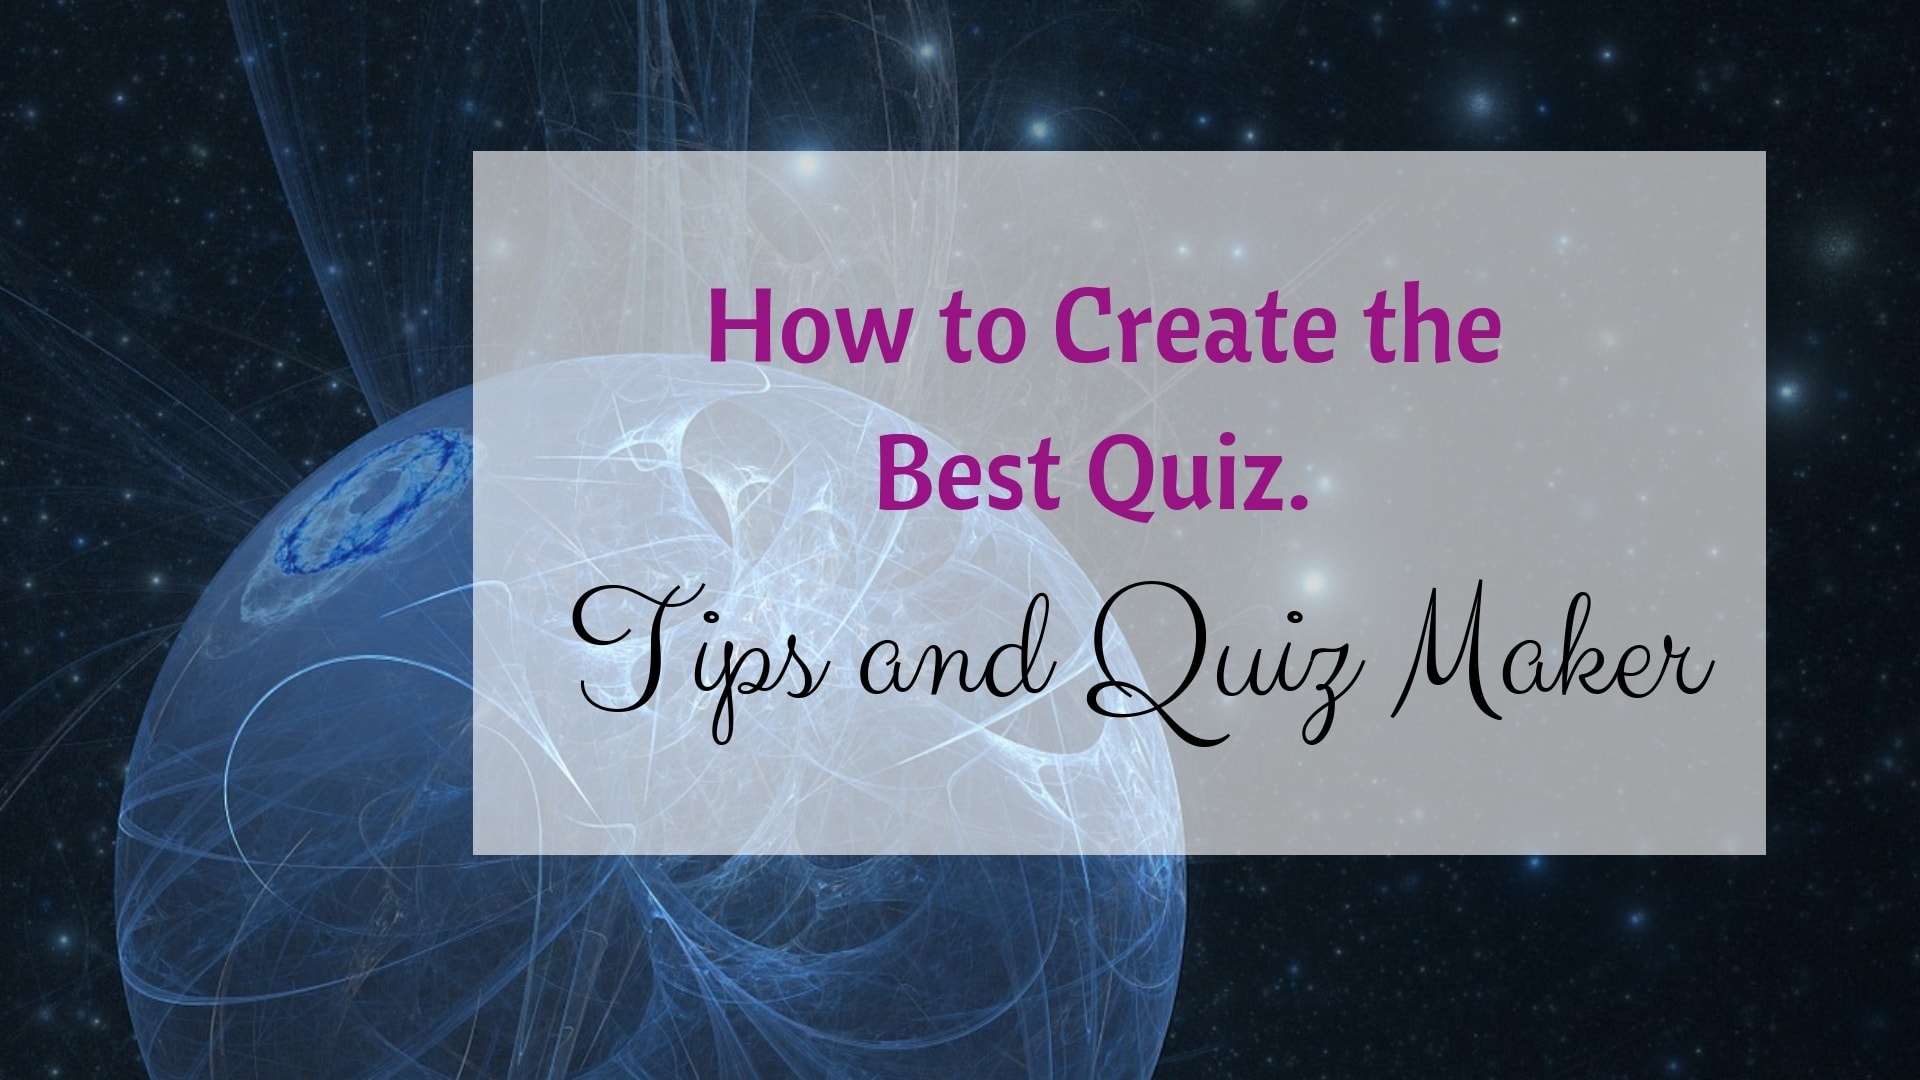 How to Create the Best Quiz. Tips and Quiz Maker